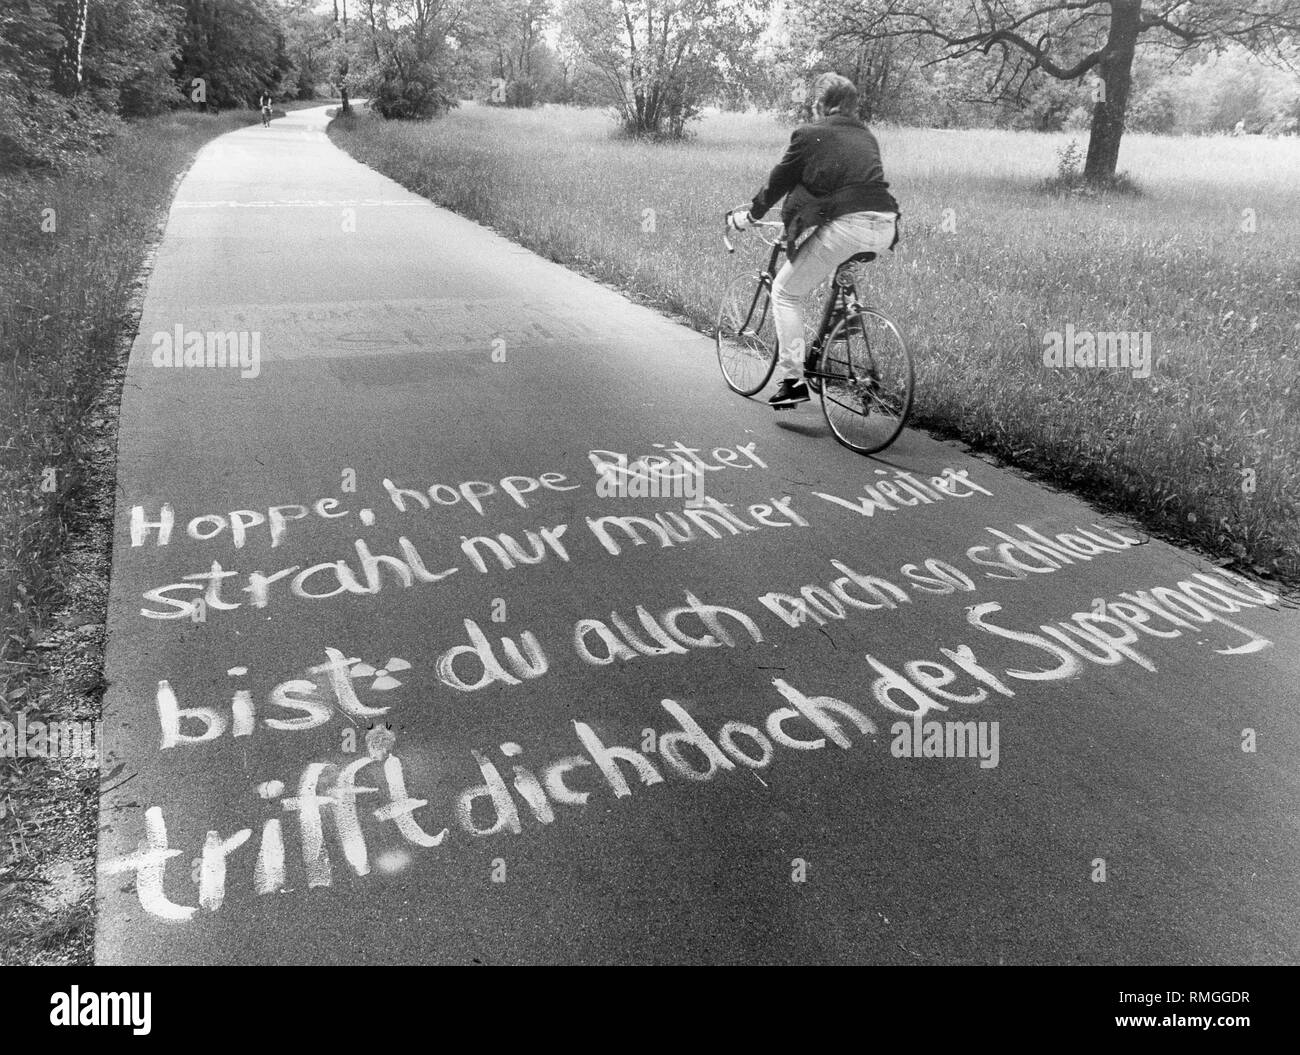 On the bike path along the east bank of the Isar: 'Hoppe, hoppe Reiter, strahl nur munter weiter / bist Du auch noch so schlau / trifft dich doch der Supergau'. (English translation:'Hop, hop rider, beam cheerfully on / you are still so smart / but the disaster will meet you'.) - Stock Image